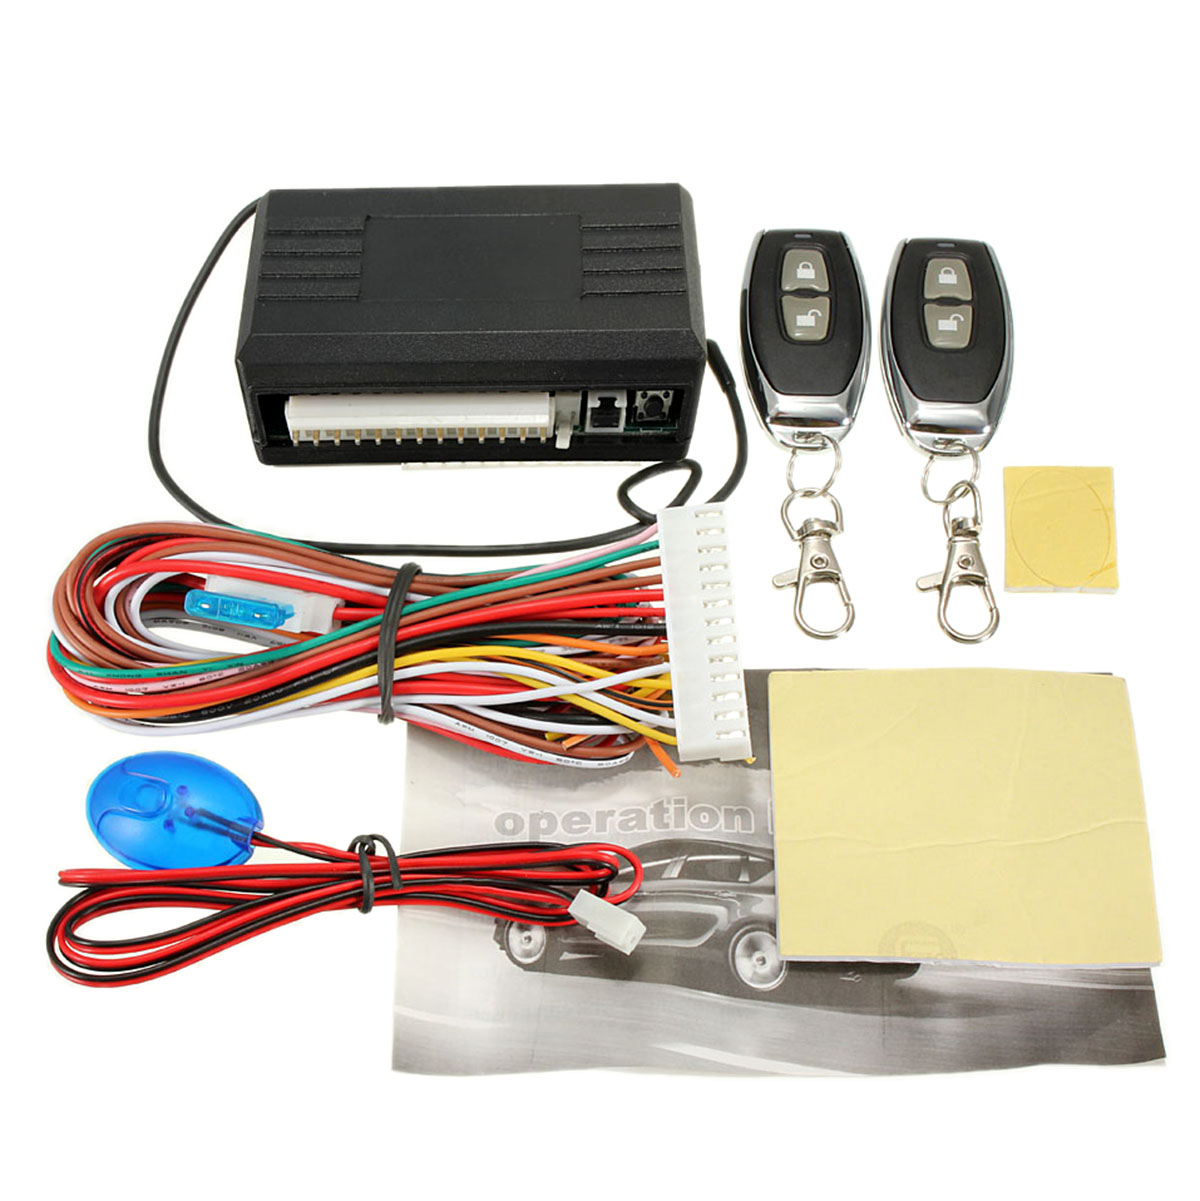 Universal Car Remote Control Central Door Lock Locking Keyless Entry System Kit Main Unit And Remote Controllers